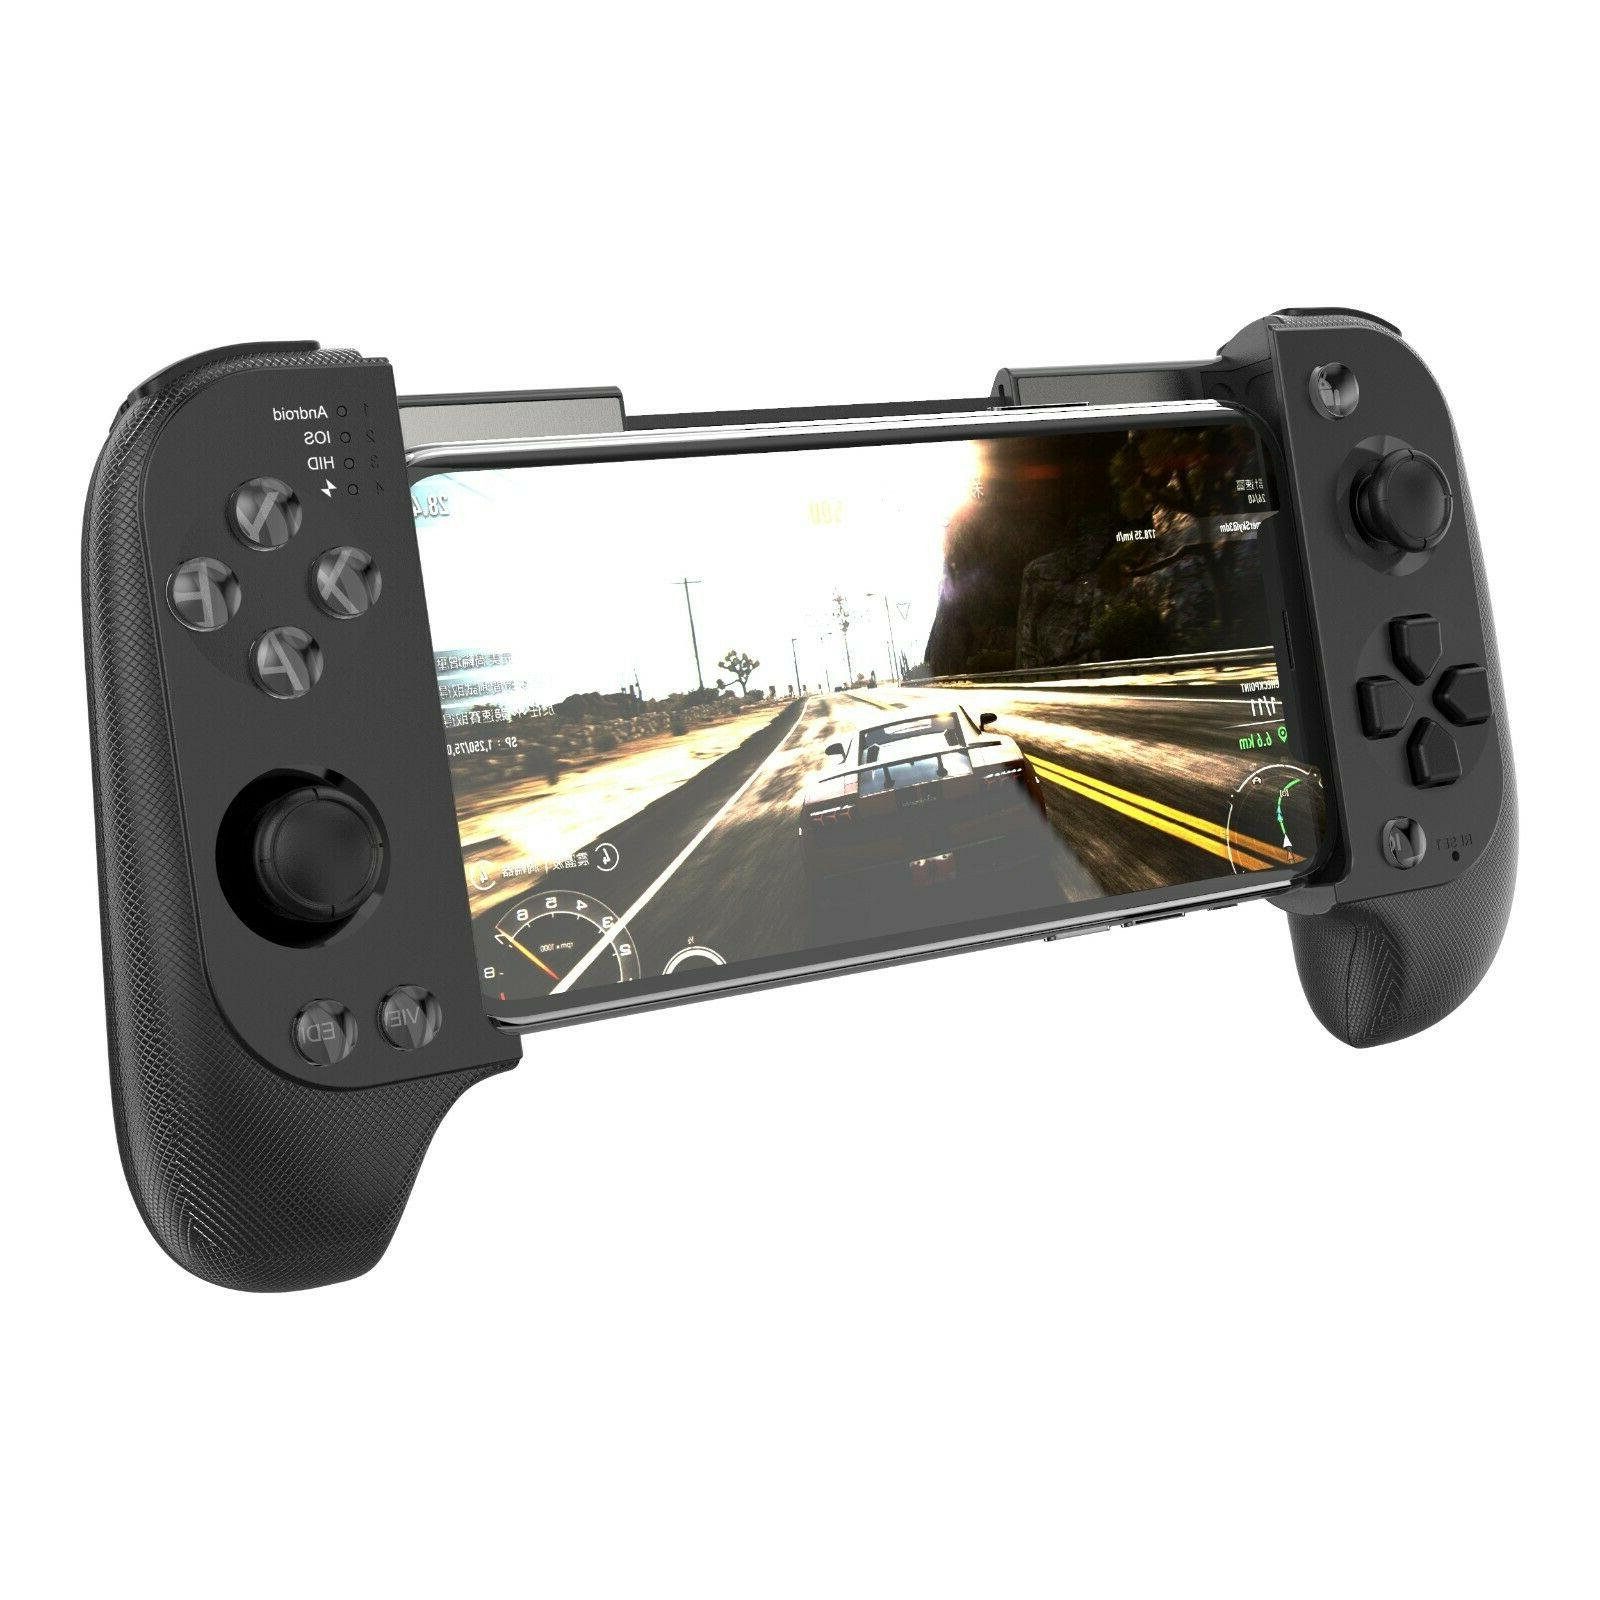 wireless gamepad mobile phone game controller